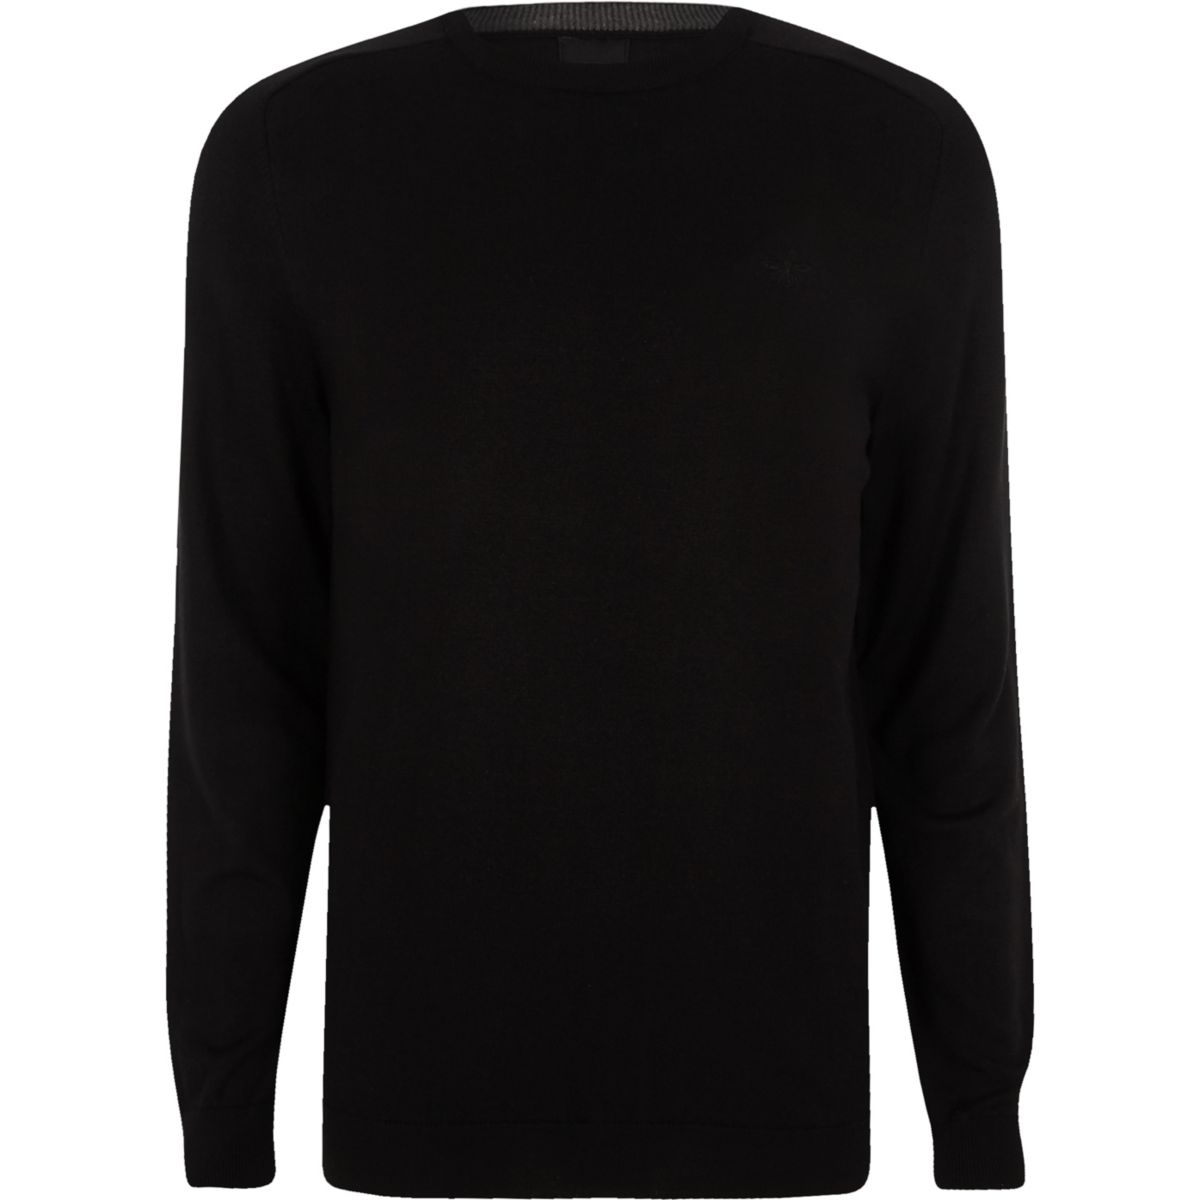 slim fit Black neck jumper crew aCqBFxgw